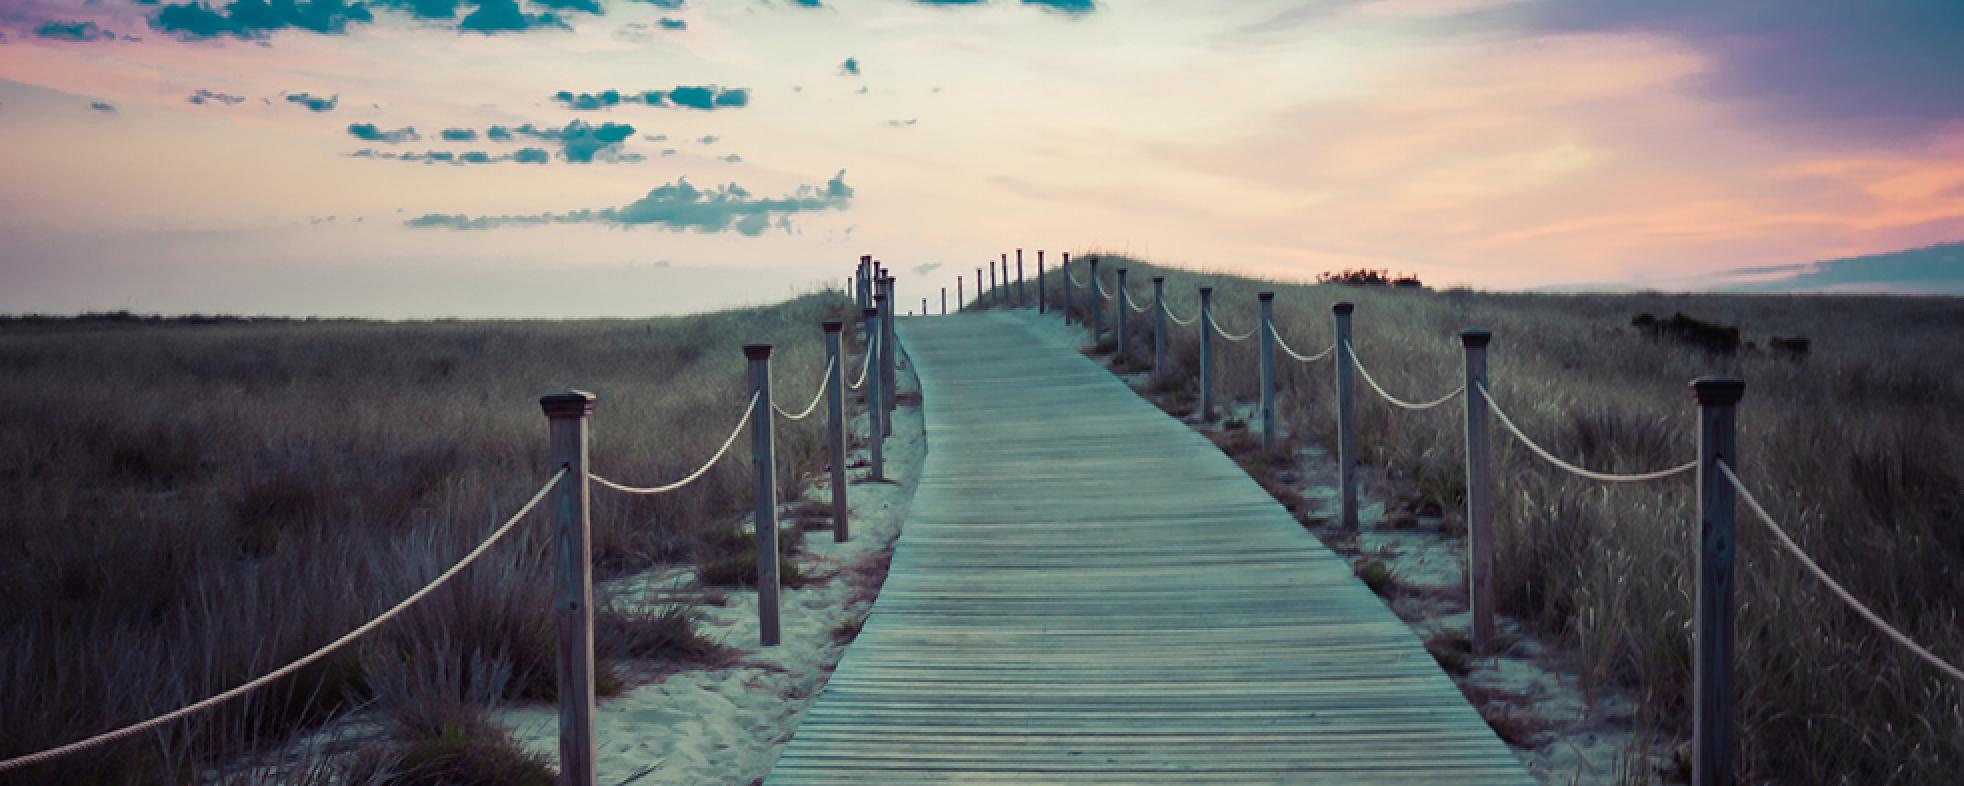 Accessible boardwalk at sunset